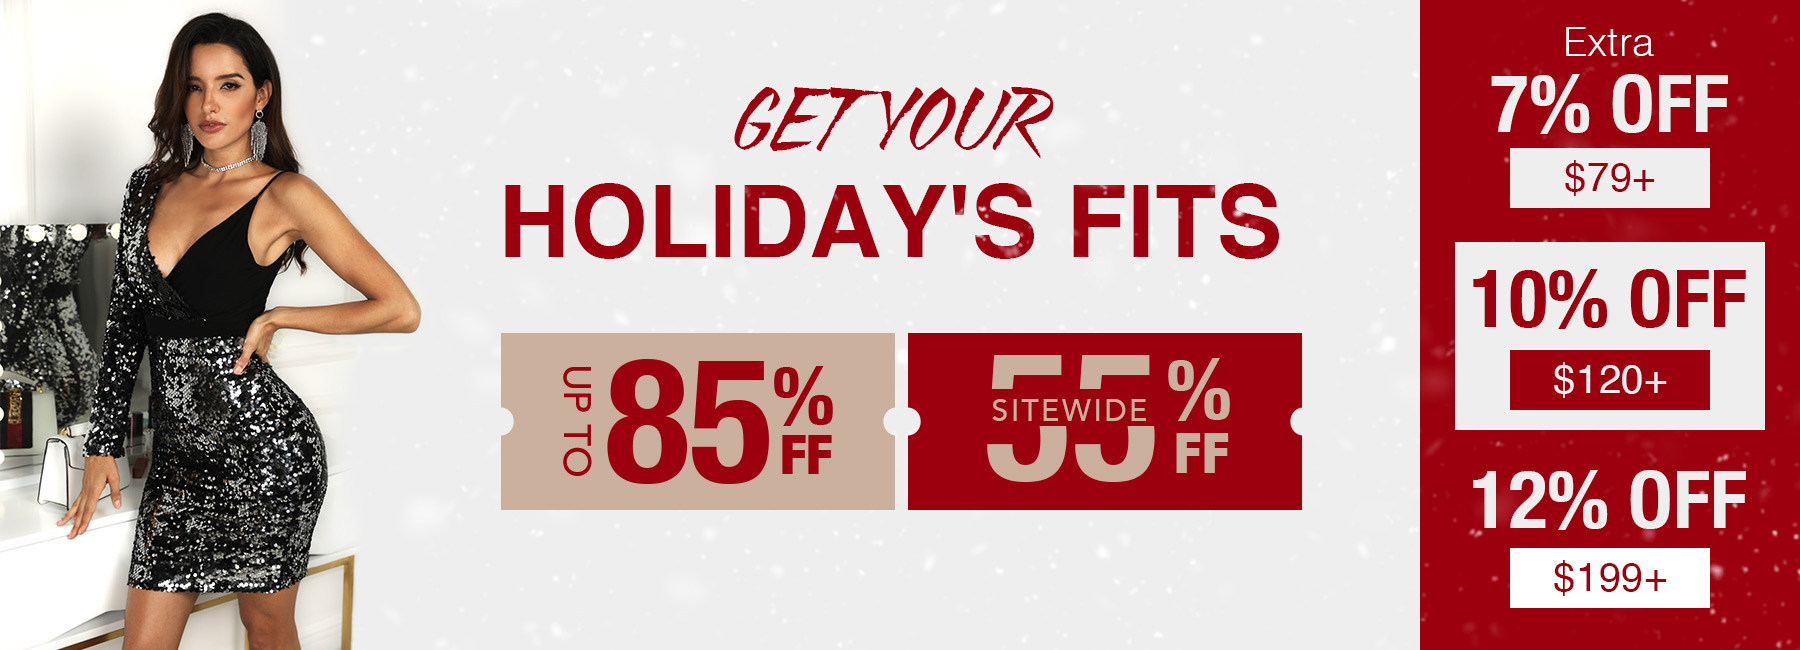 Get Your Holidays Fits